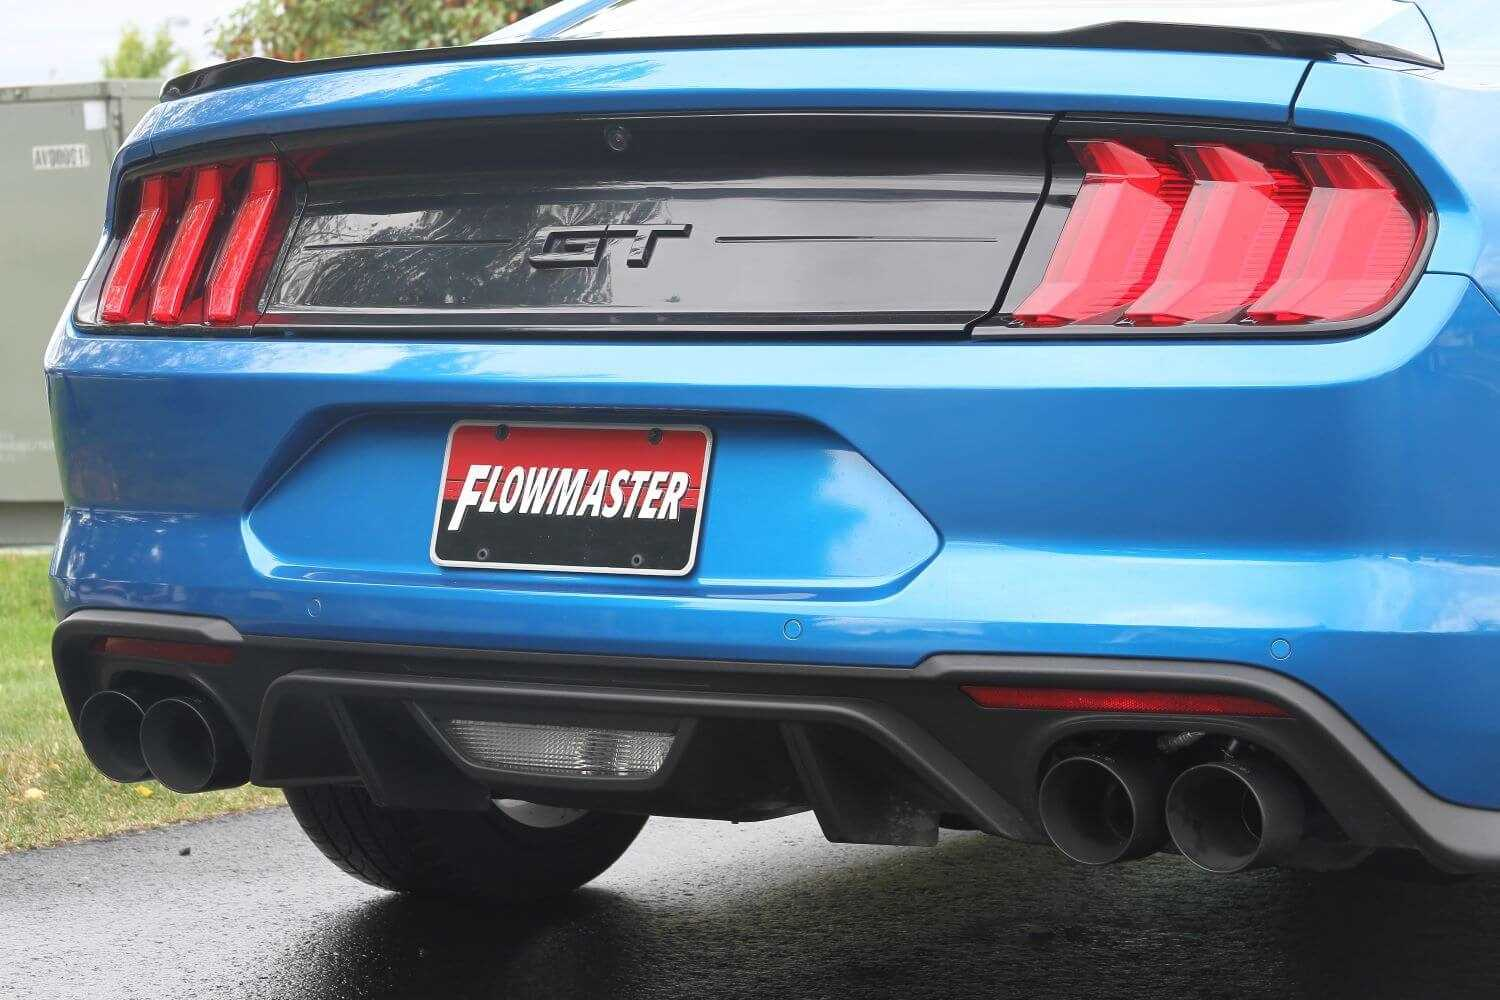 817800 Flowmaster Outlaw Series™ Cat Back Exhaust System